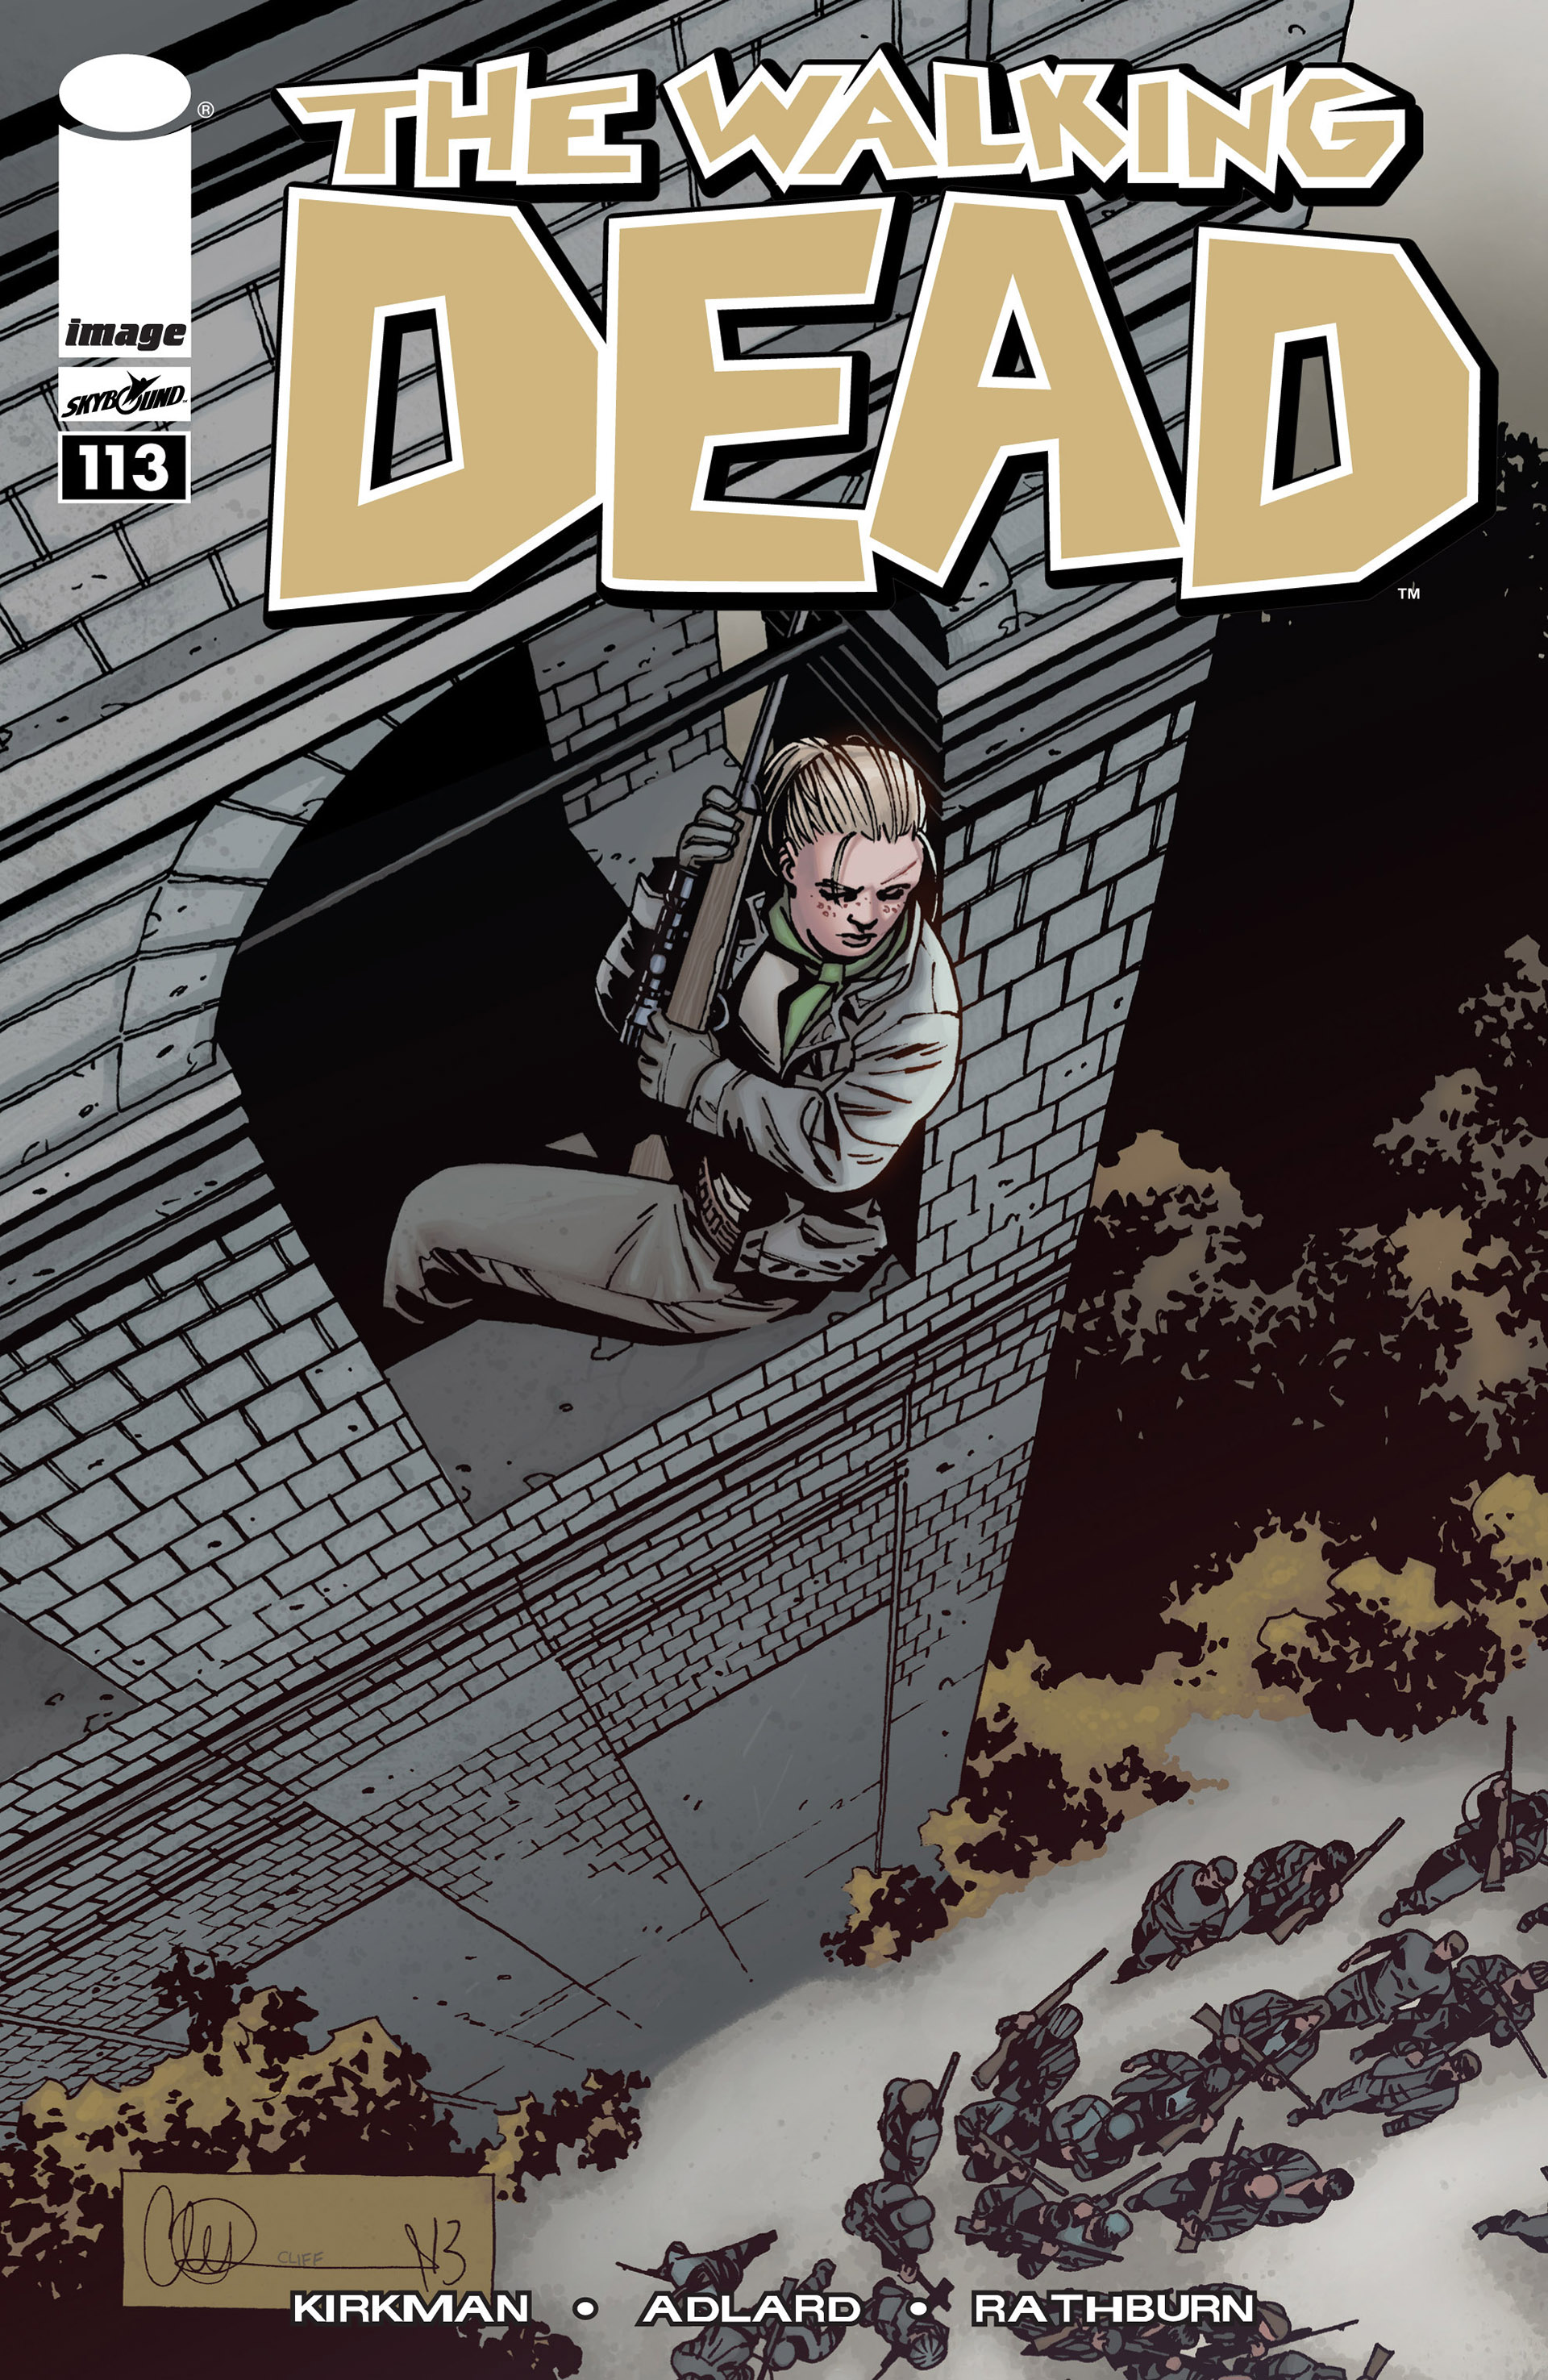 The Walking Dead Issue #113 Page 1